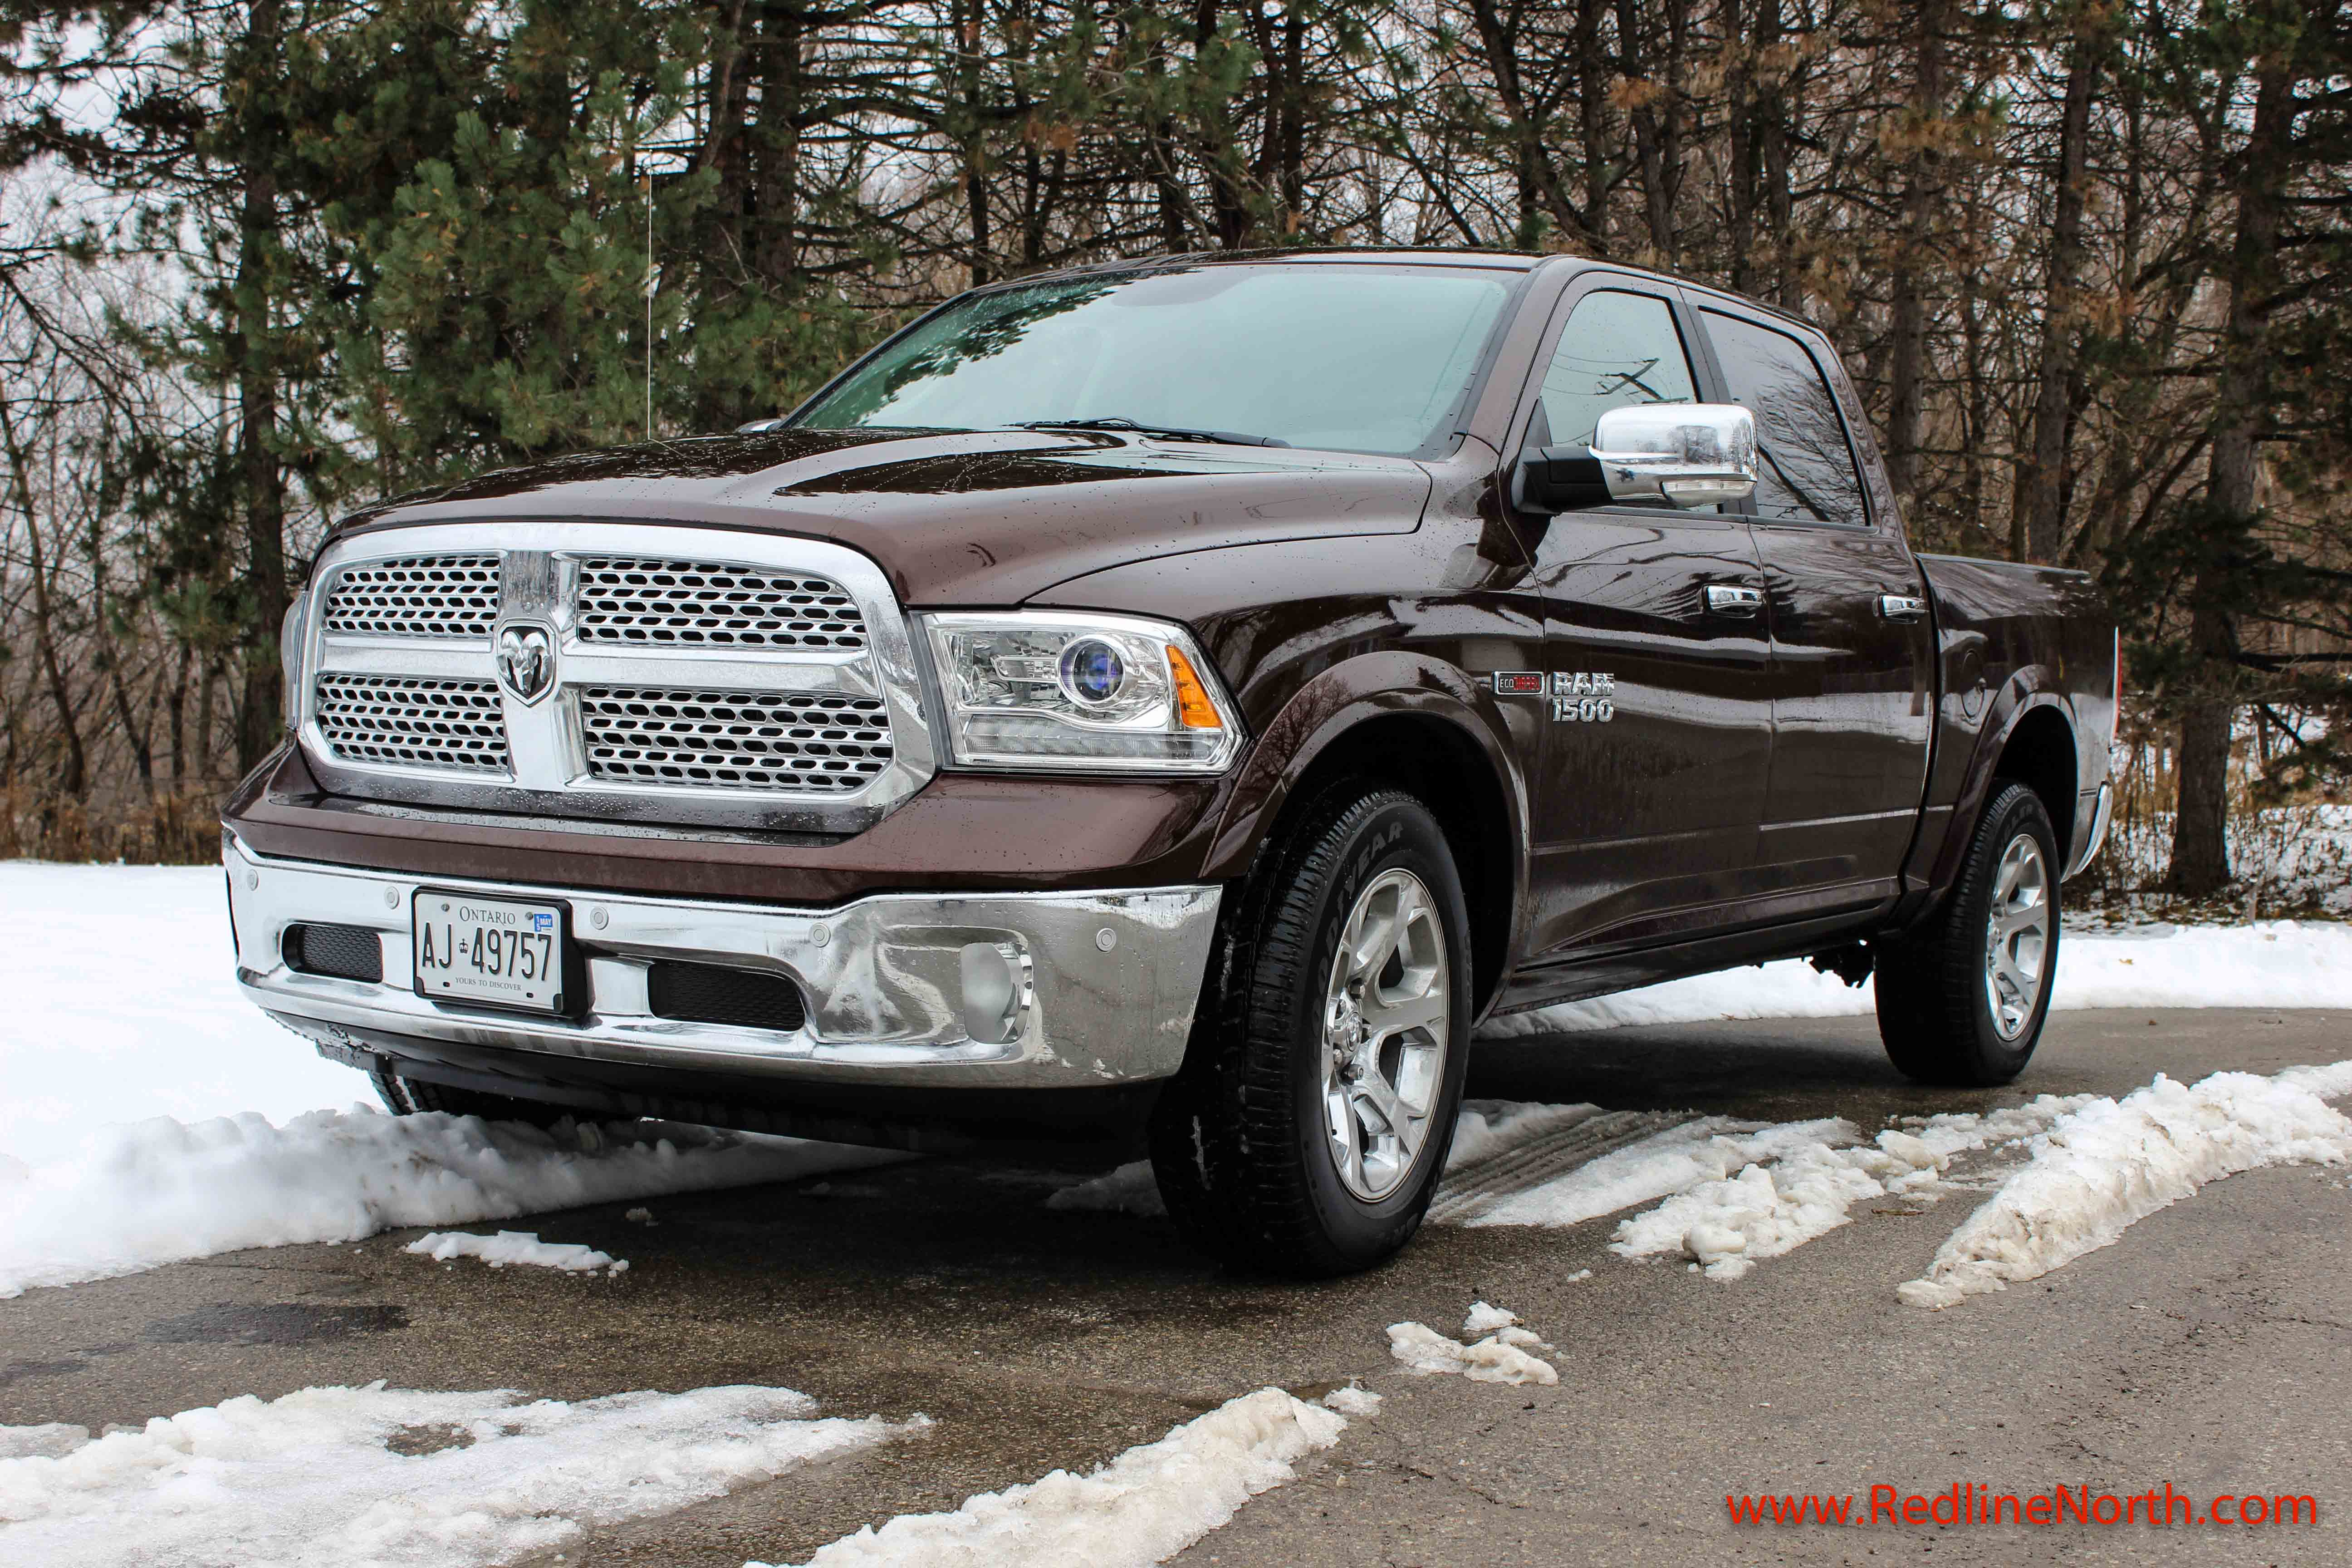 2015 dodge ram 1500 laramie 3 0l v6 ecodiesel redlinenorth. Black Bedroom Furniture Sets. Home Design Ideas